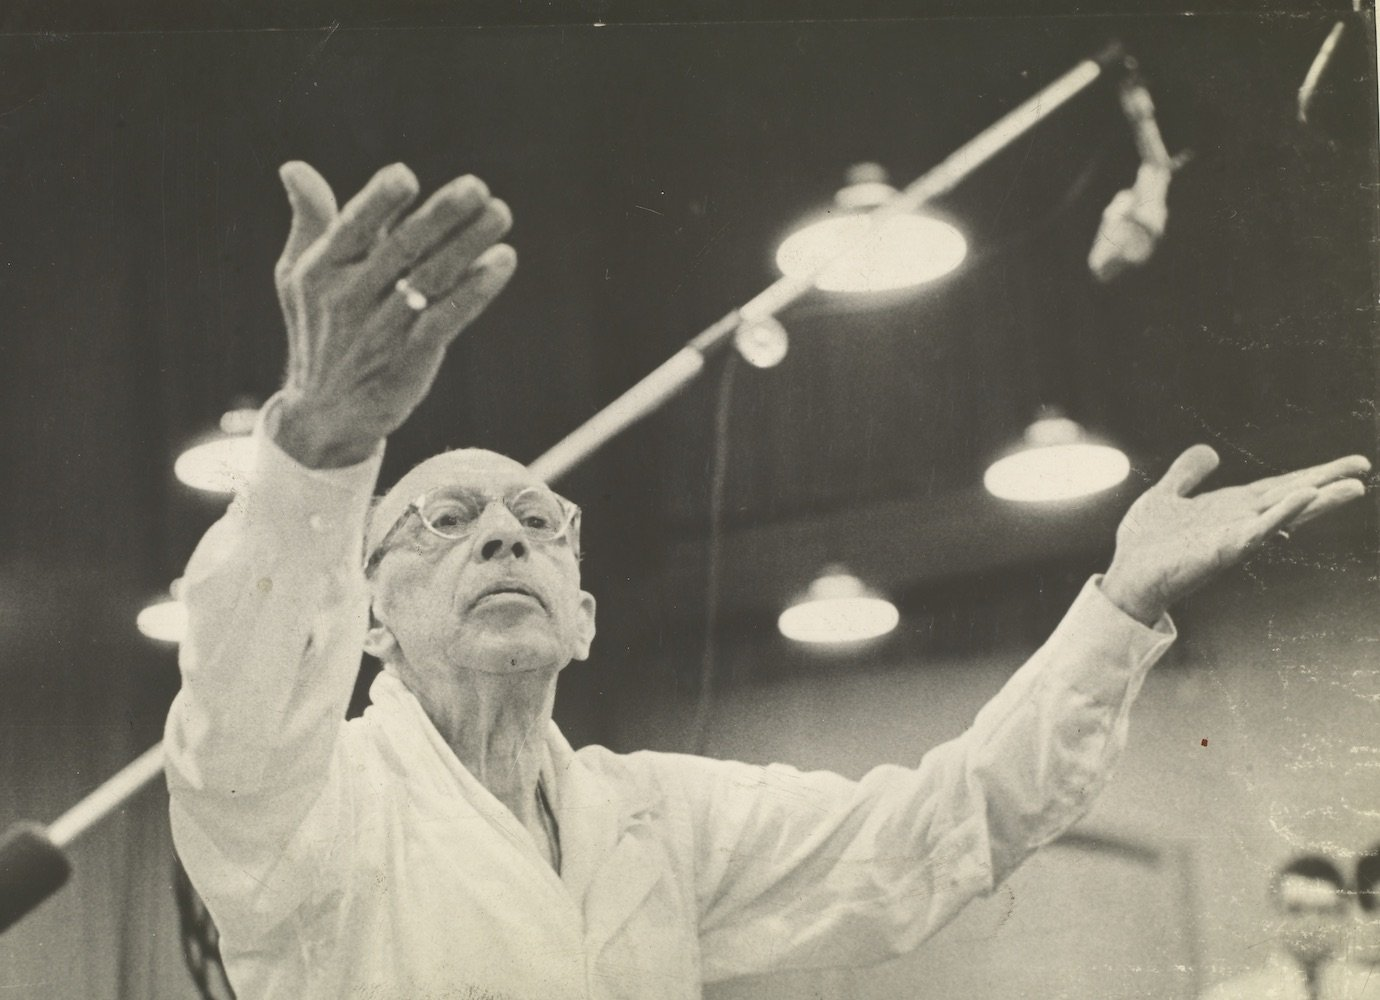 Igor Stravinsky: where to start with his music